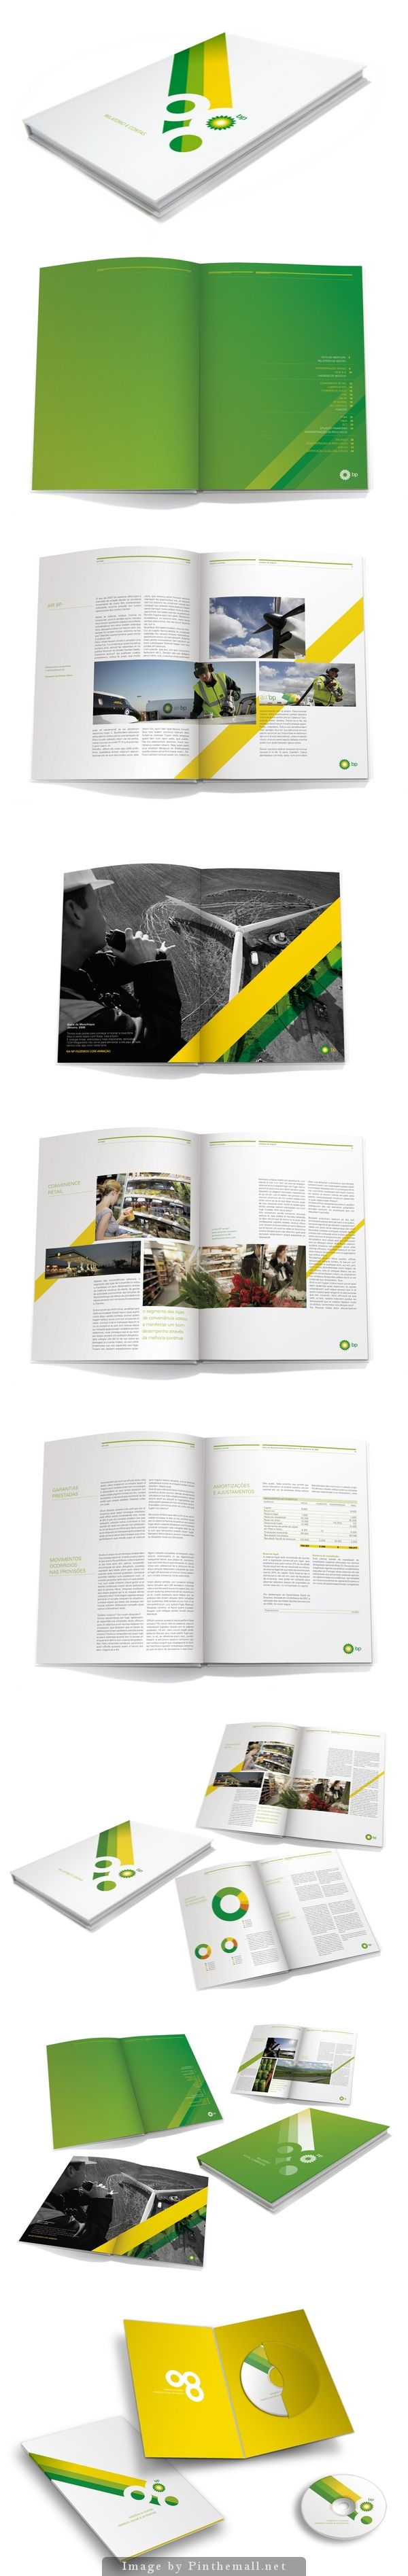 BP - annual report 2008 by Rui Granjo